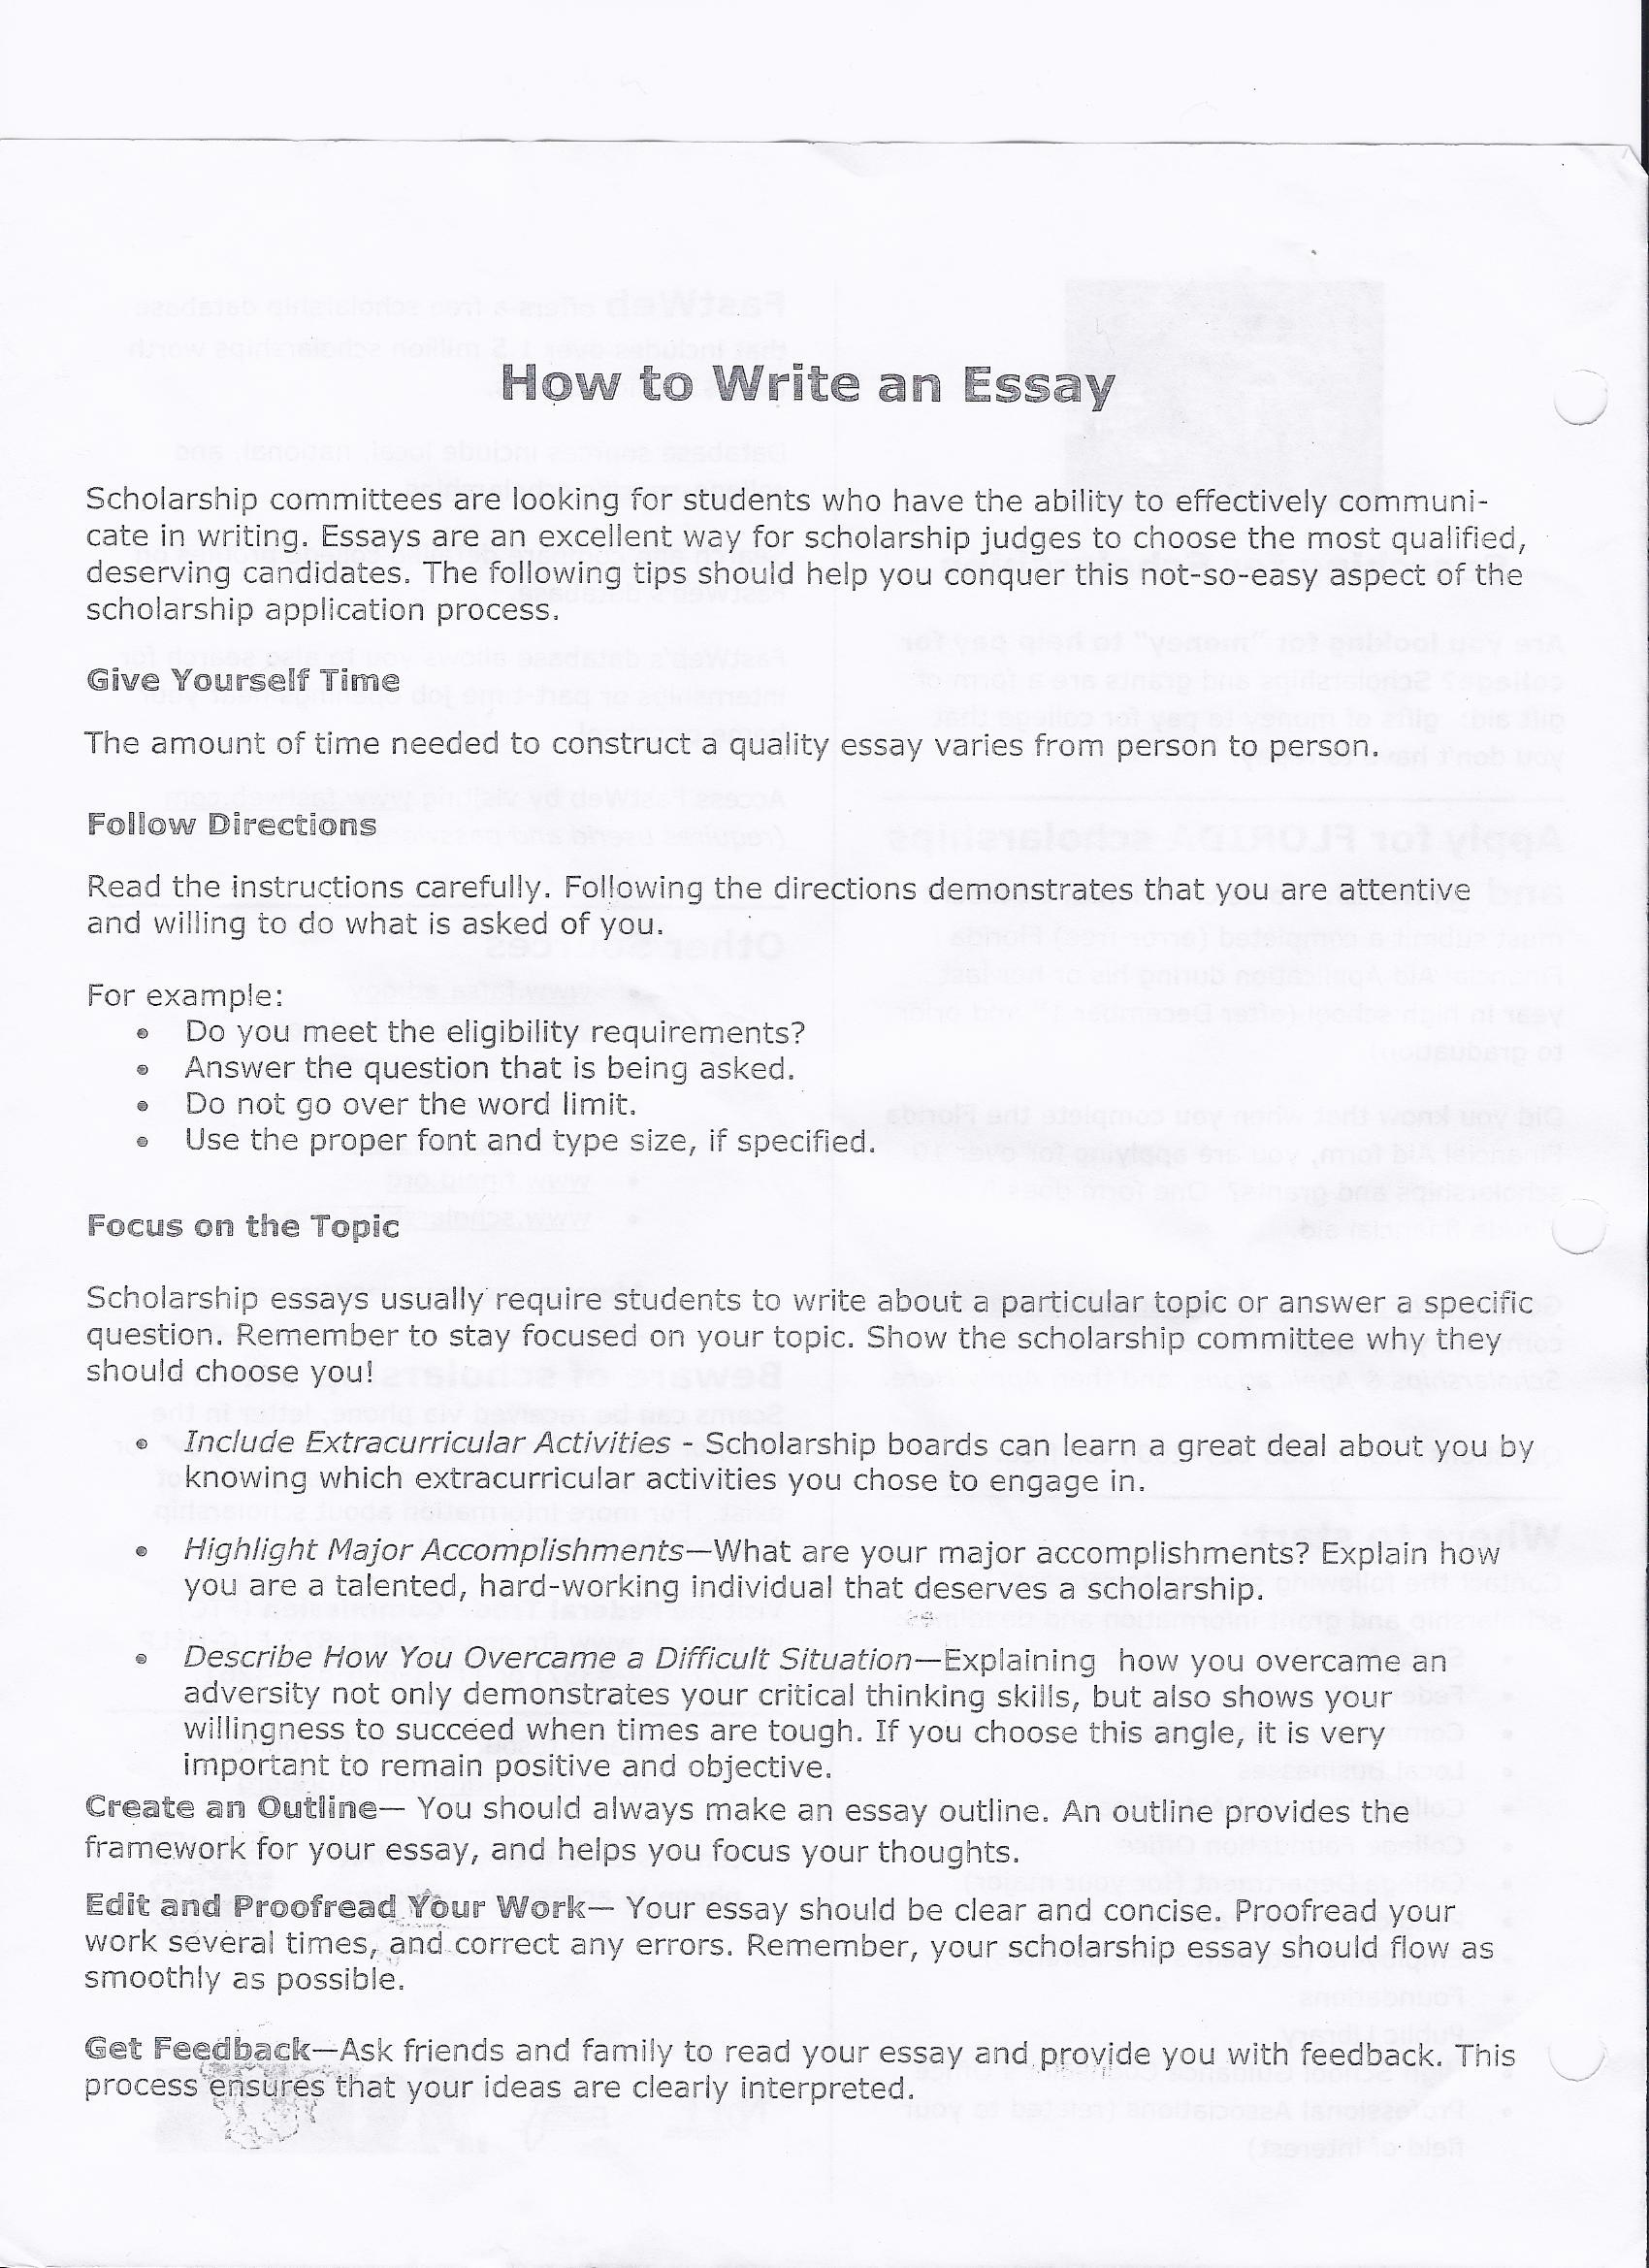 Rhetorical analysis essay structure